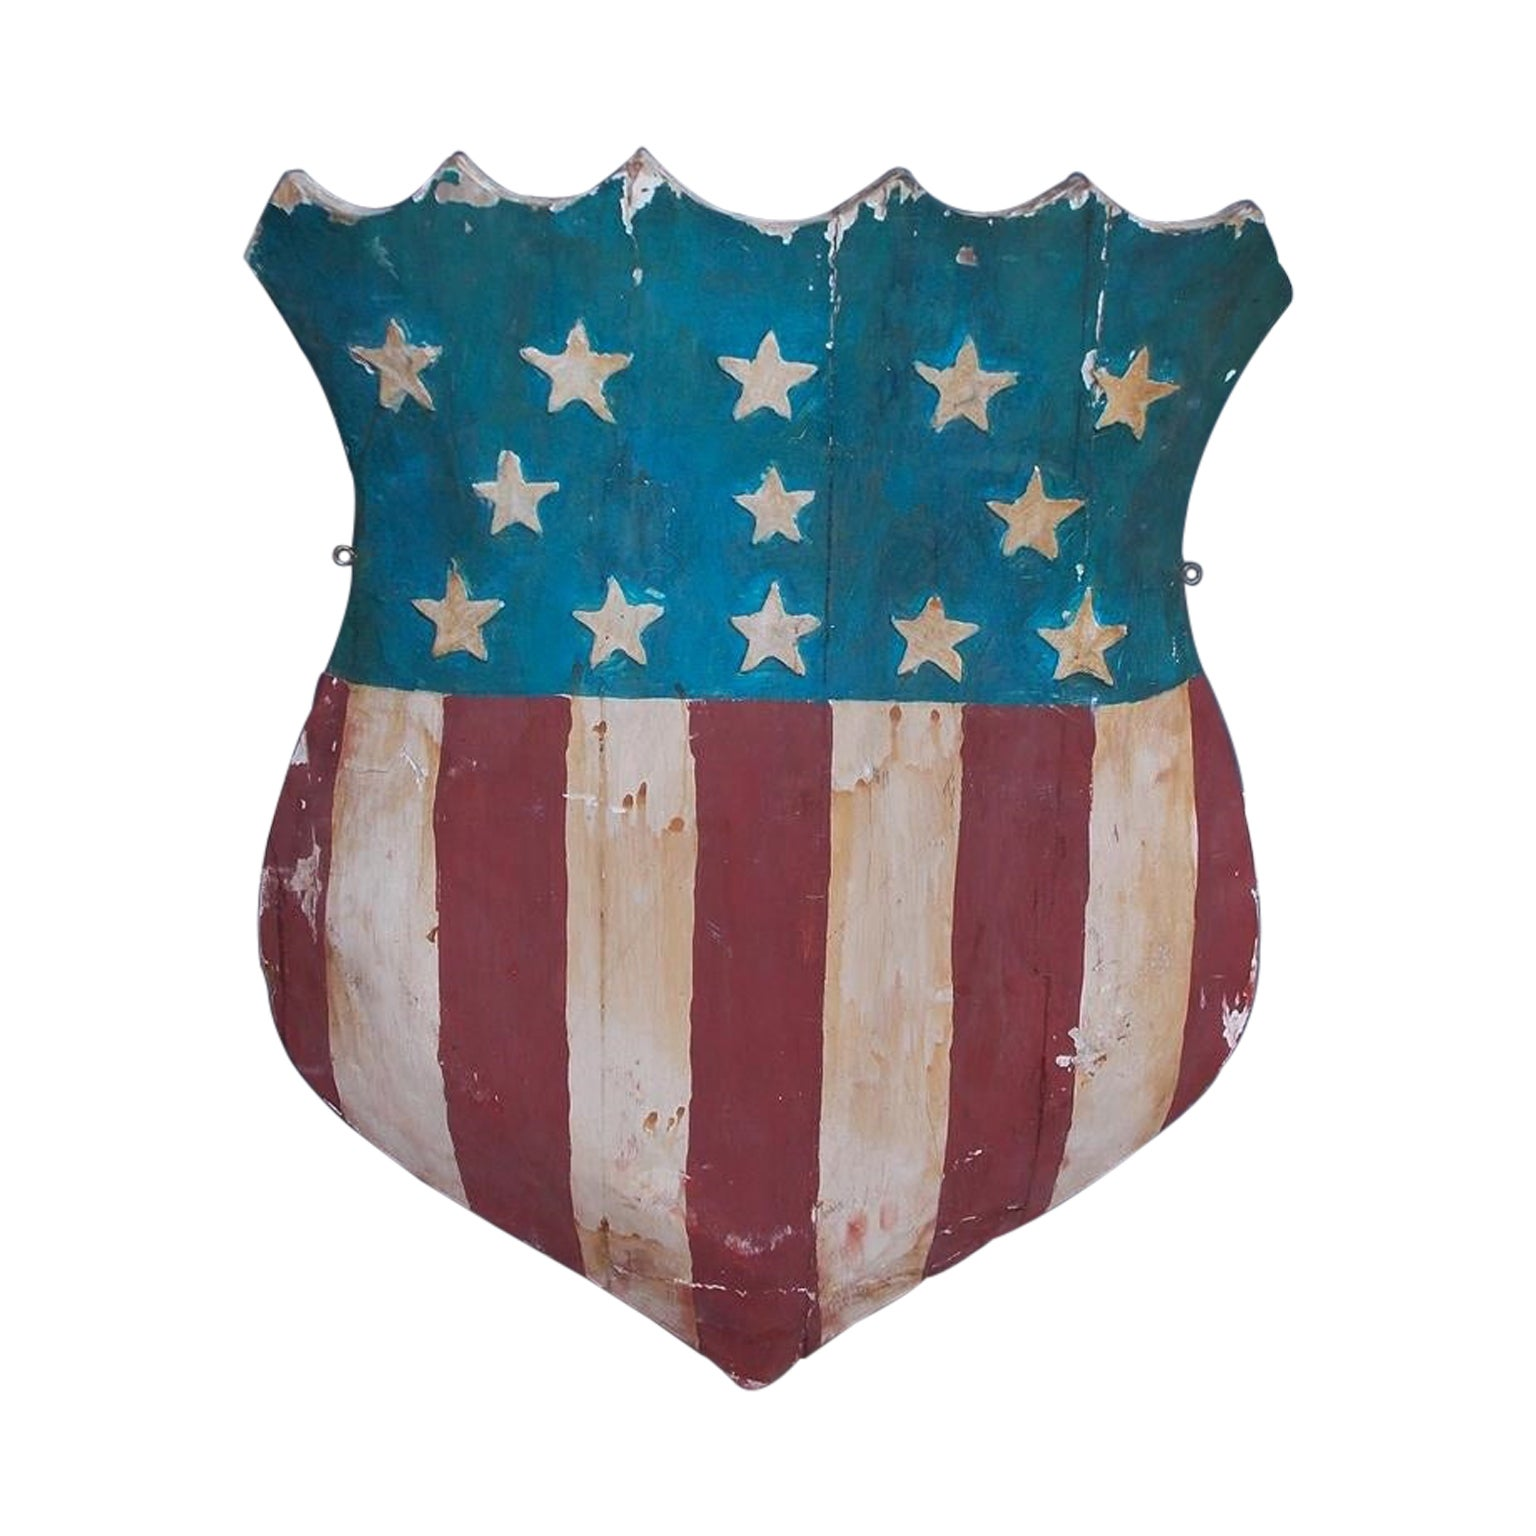 American Hand Carved and Painted Patriotic Shield with Raised Stars. C. 1870